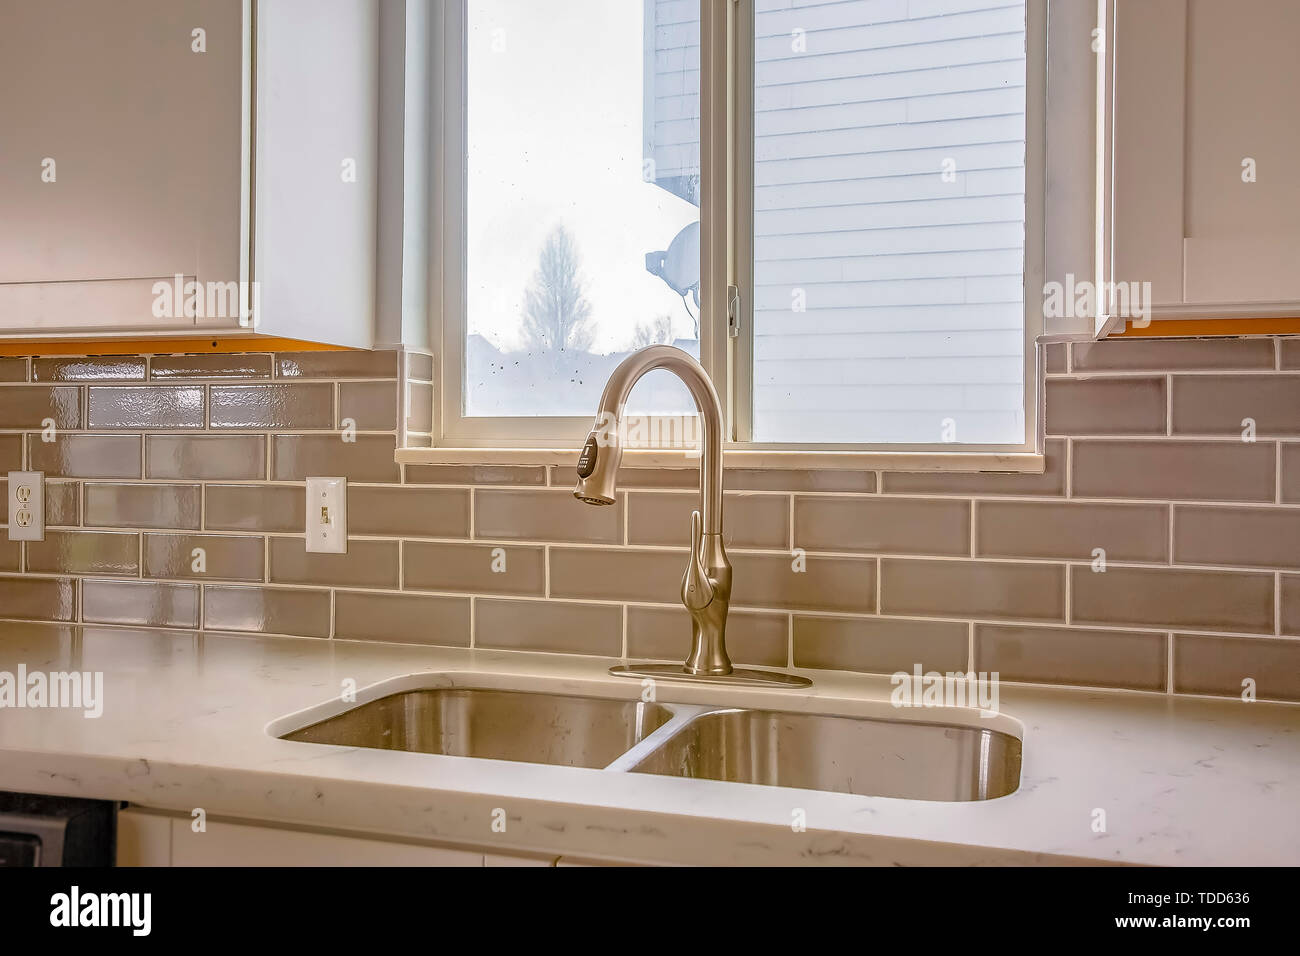 Double Sink And Faucet Of A Kitchen With View Outdoors Through The Window Glossy Tiles On Wall Can Be Seen Below Hanging Wooden Cabinets Stock Photo Alamy